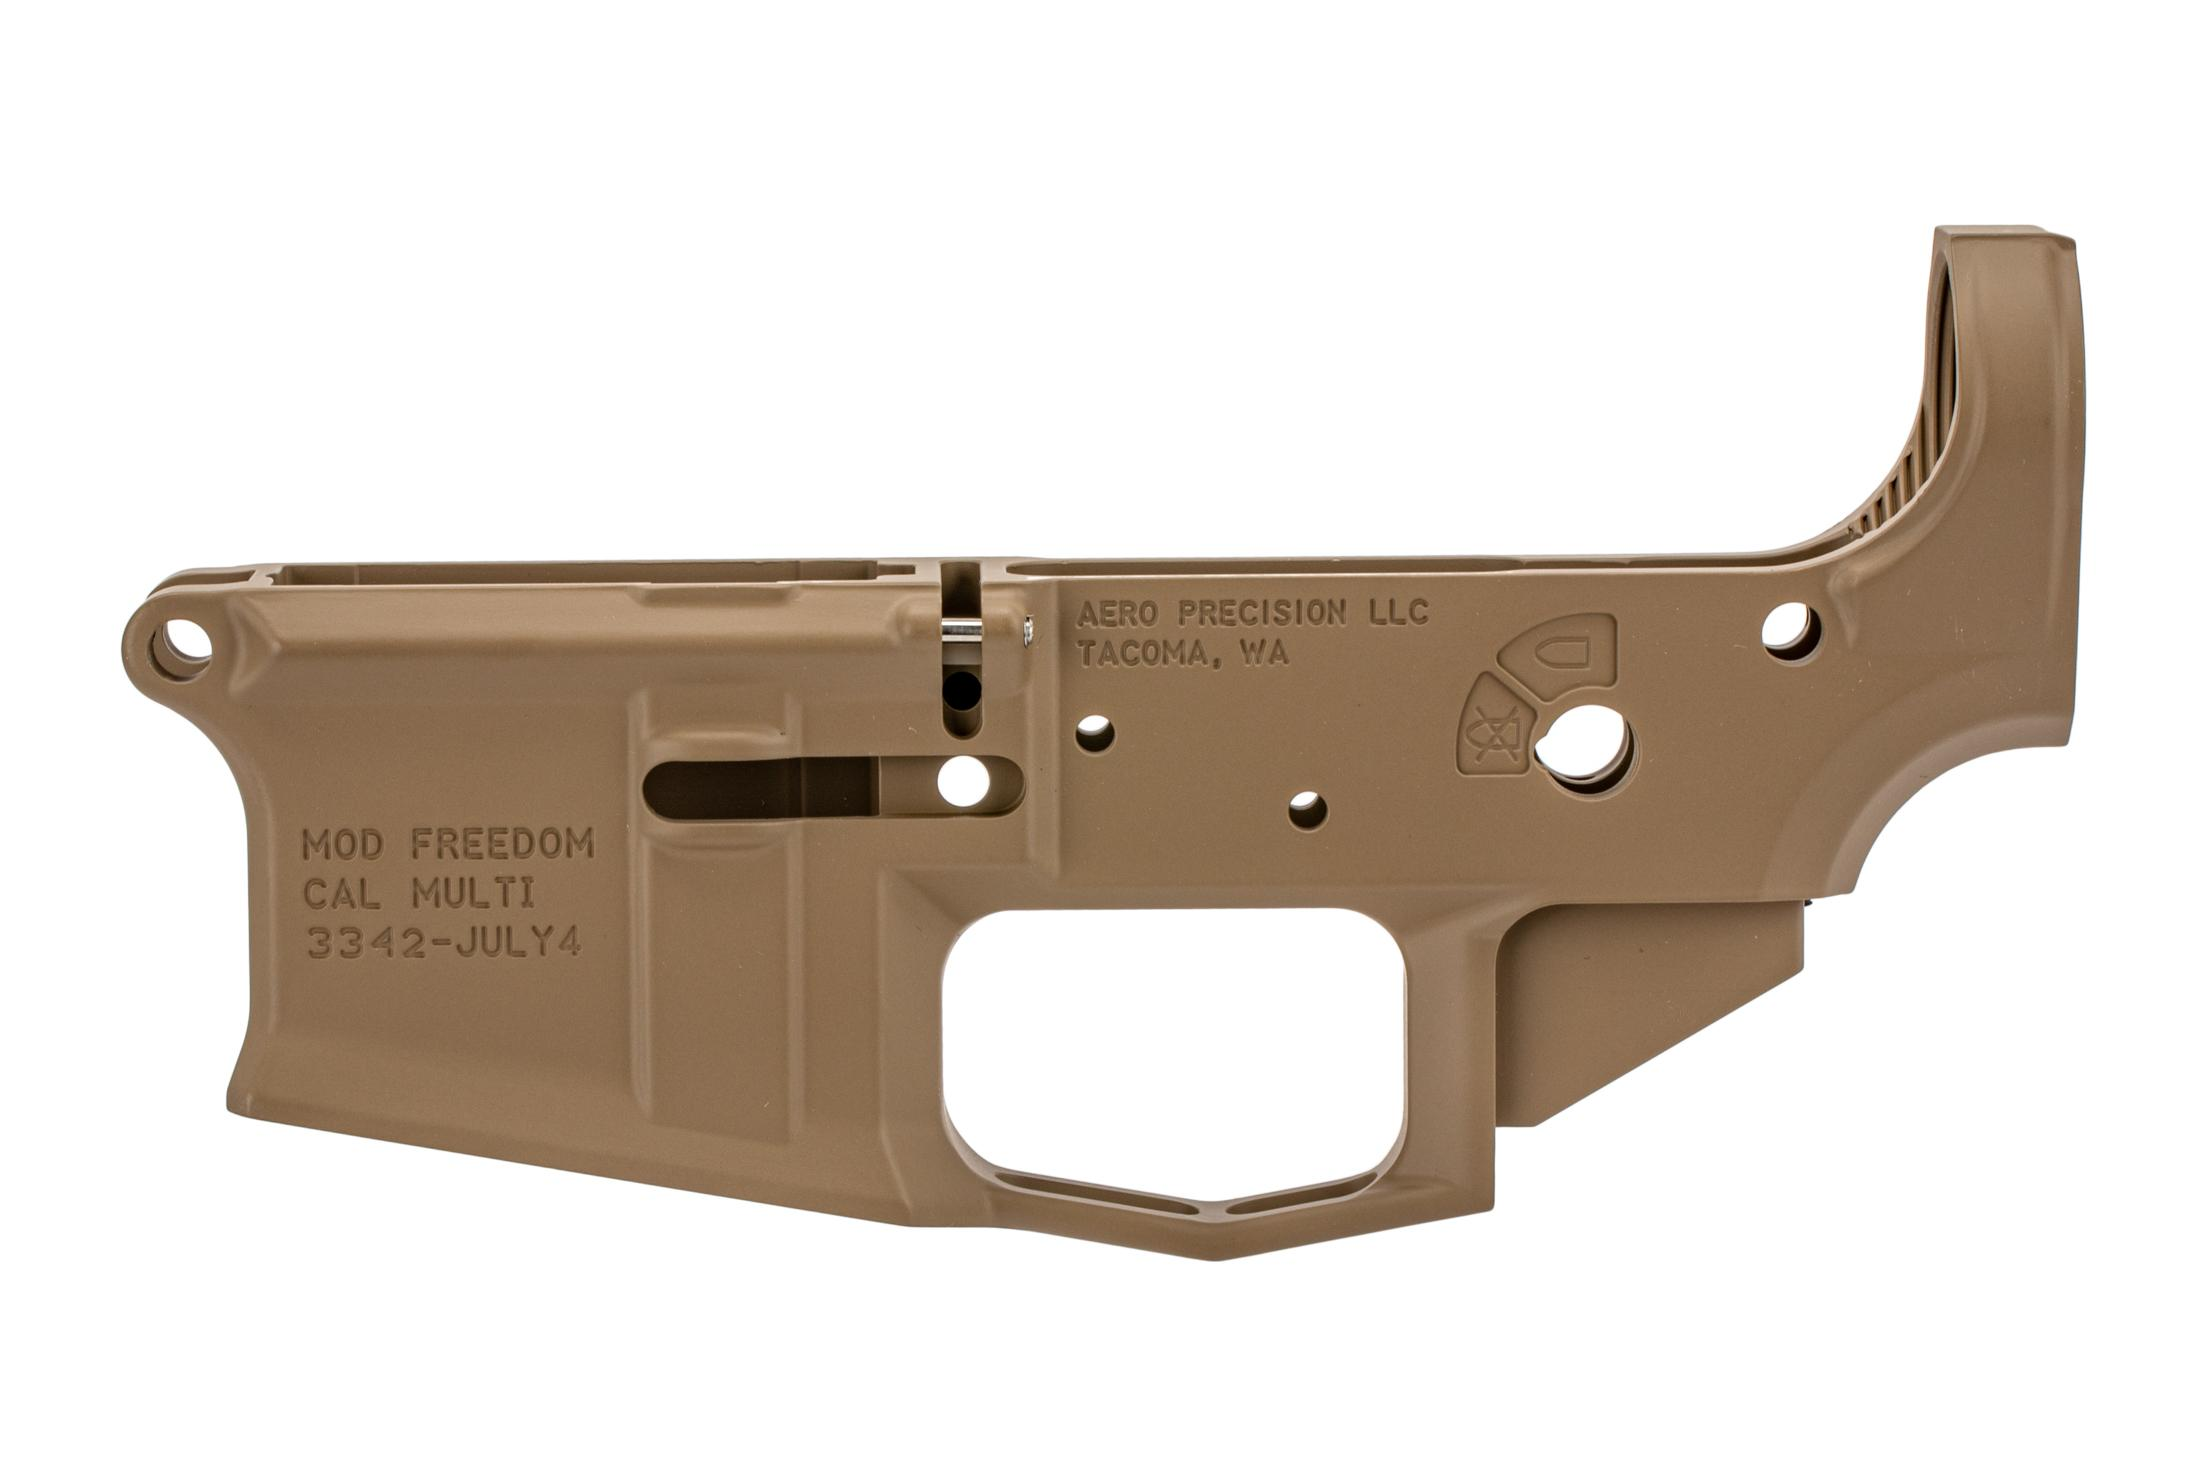 Aero special edition stripped lower for AR-15 features a flag engraving and flat dark earth anodized finish